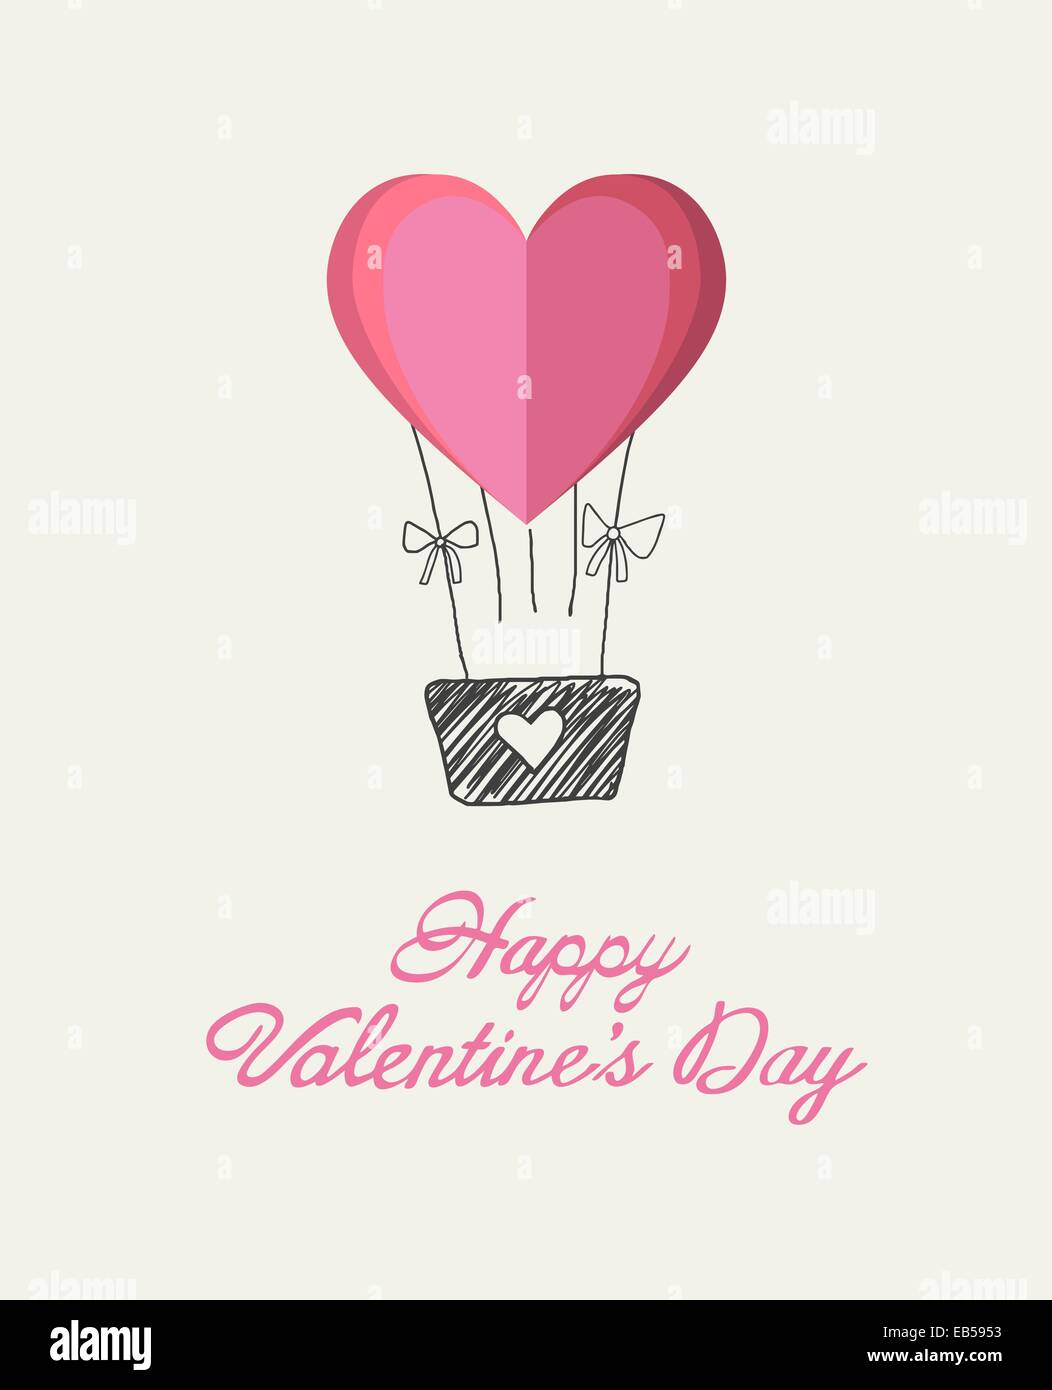 Happy Valentines Day Vector With Heart Hot Air Balloon Stock Vector